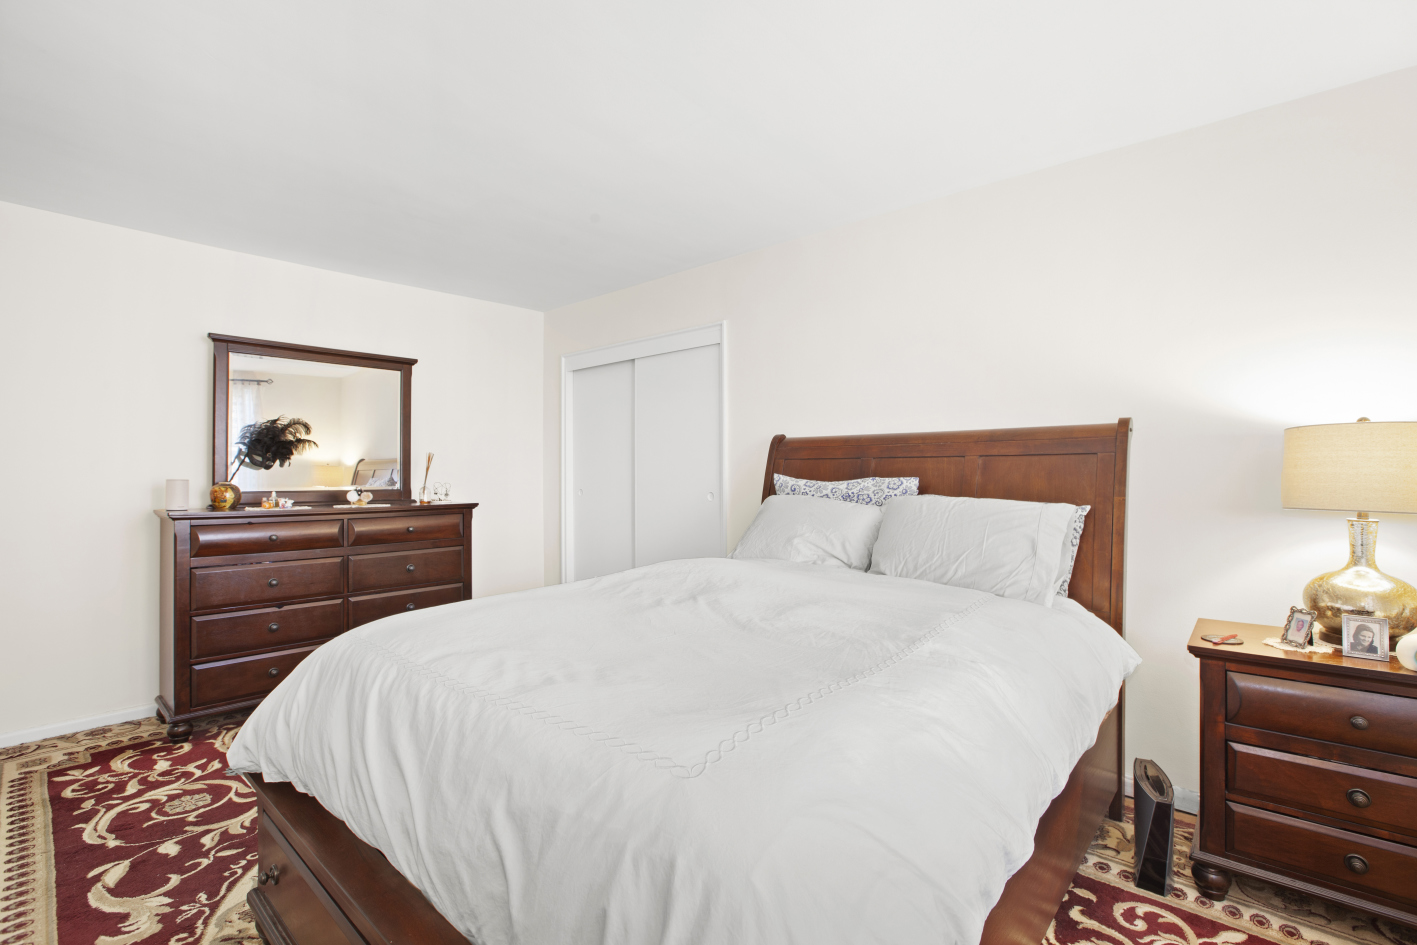 Apartment for sale at 18-40 211th Street, Apt 4-B